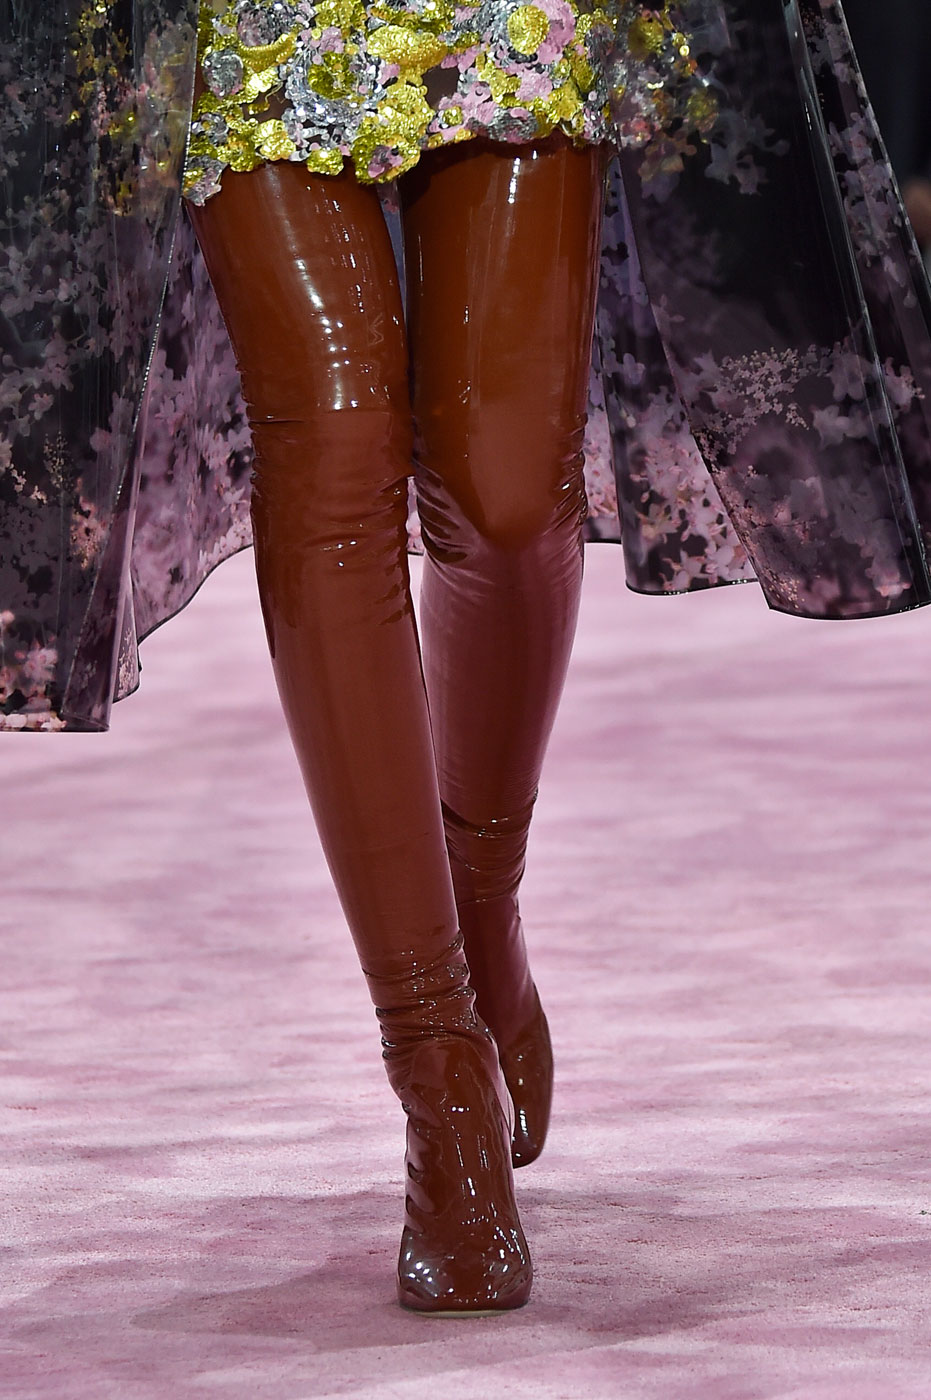 Christian-Dior-fashion-runway-show-close-ups-haute-couture-paris-spring-summer-2015-the-impression-006